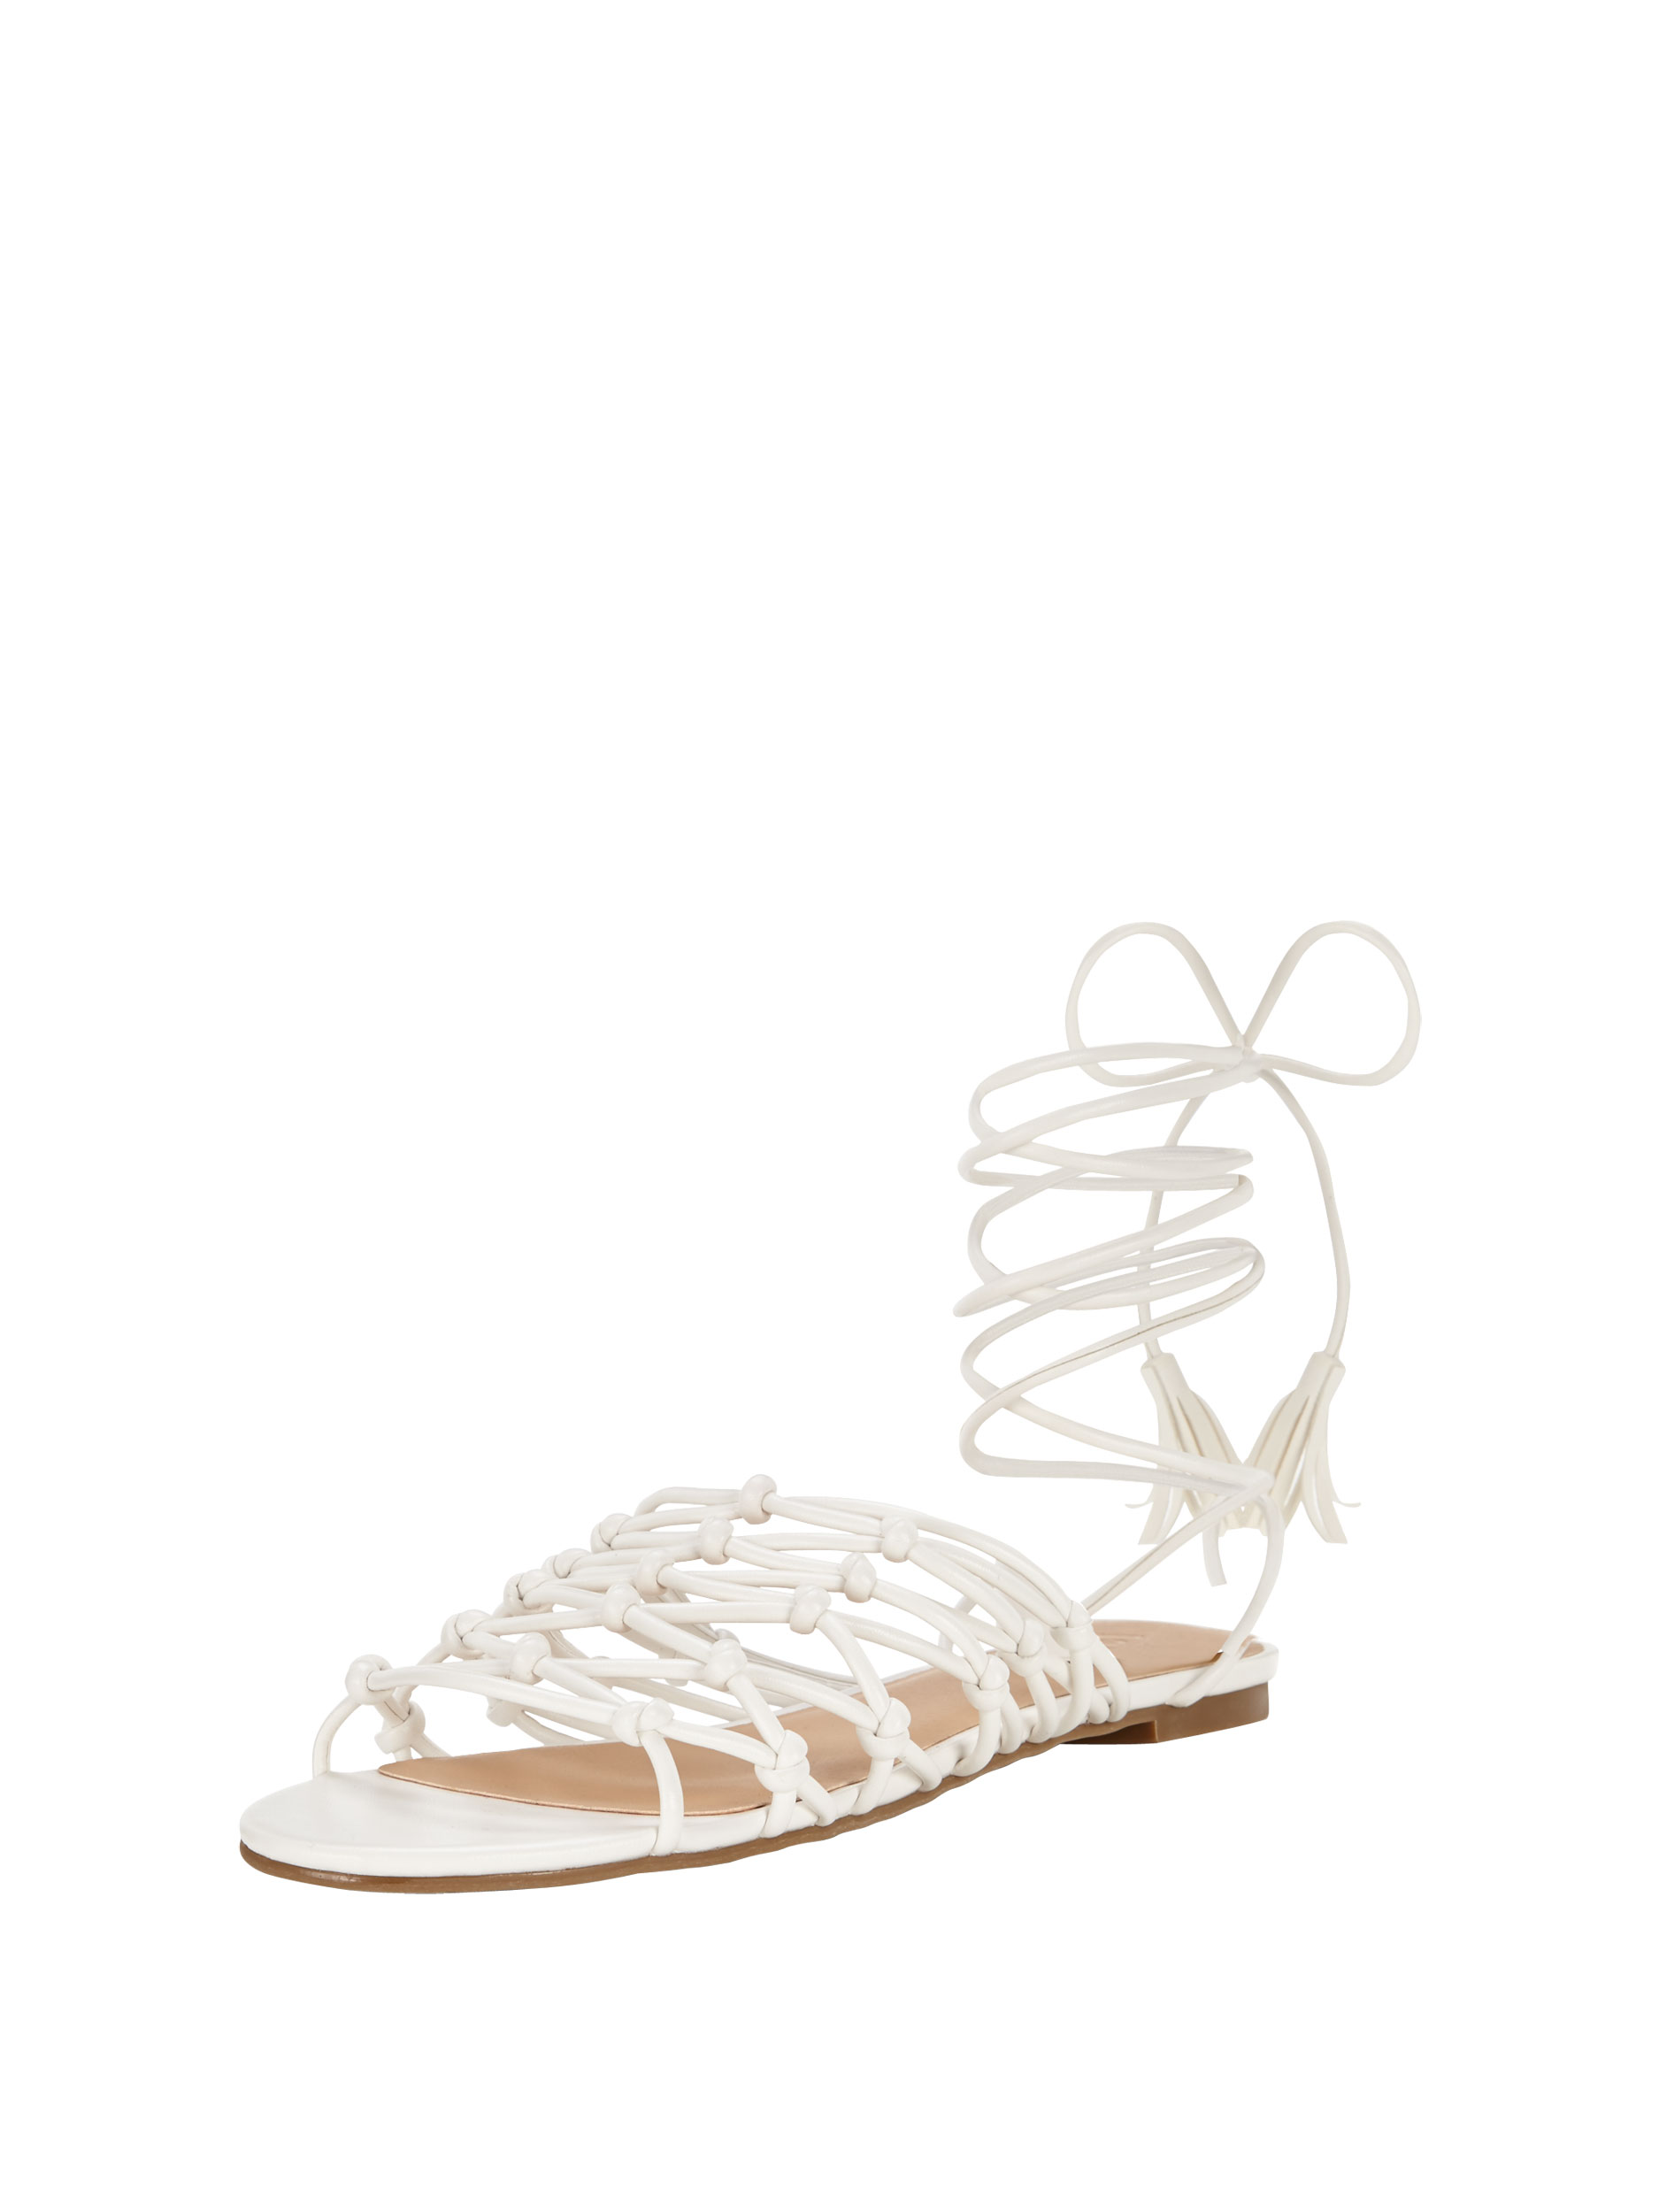 V by Very Bliss Knotted Tie Up The Leg Flat Sandals.